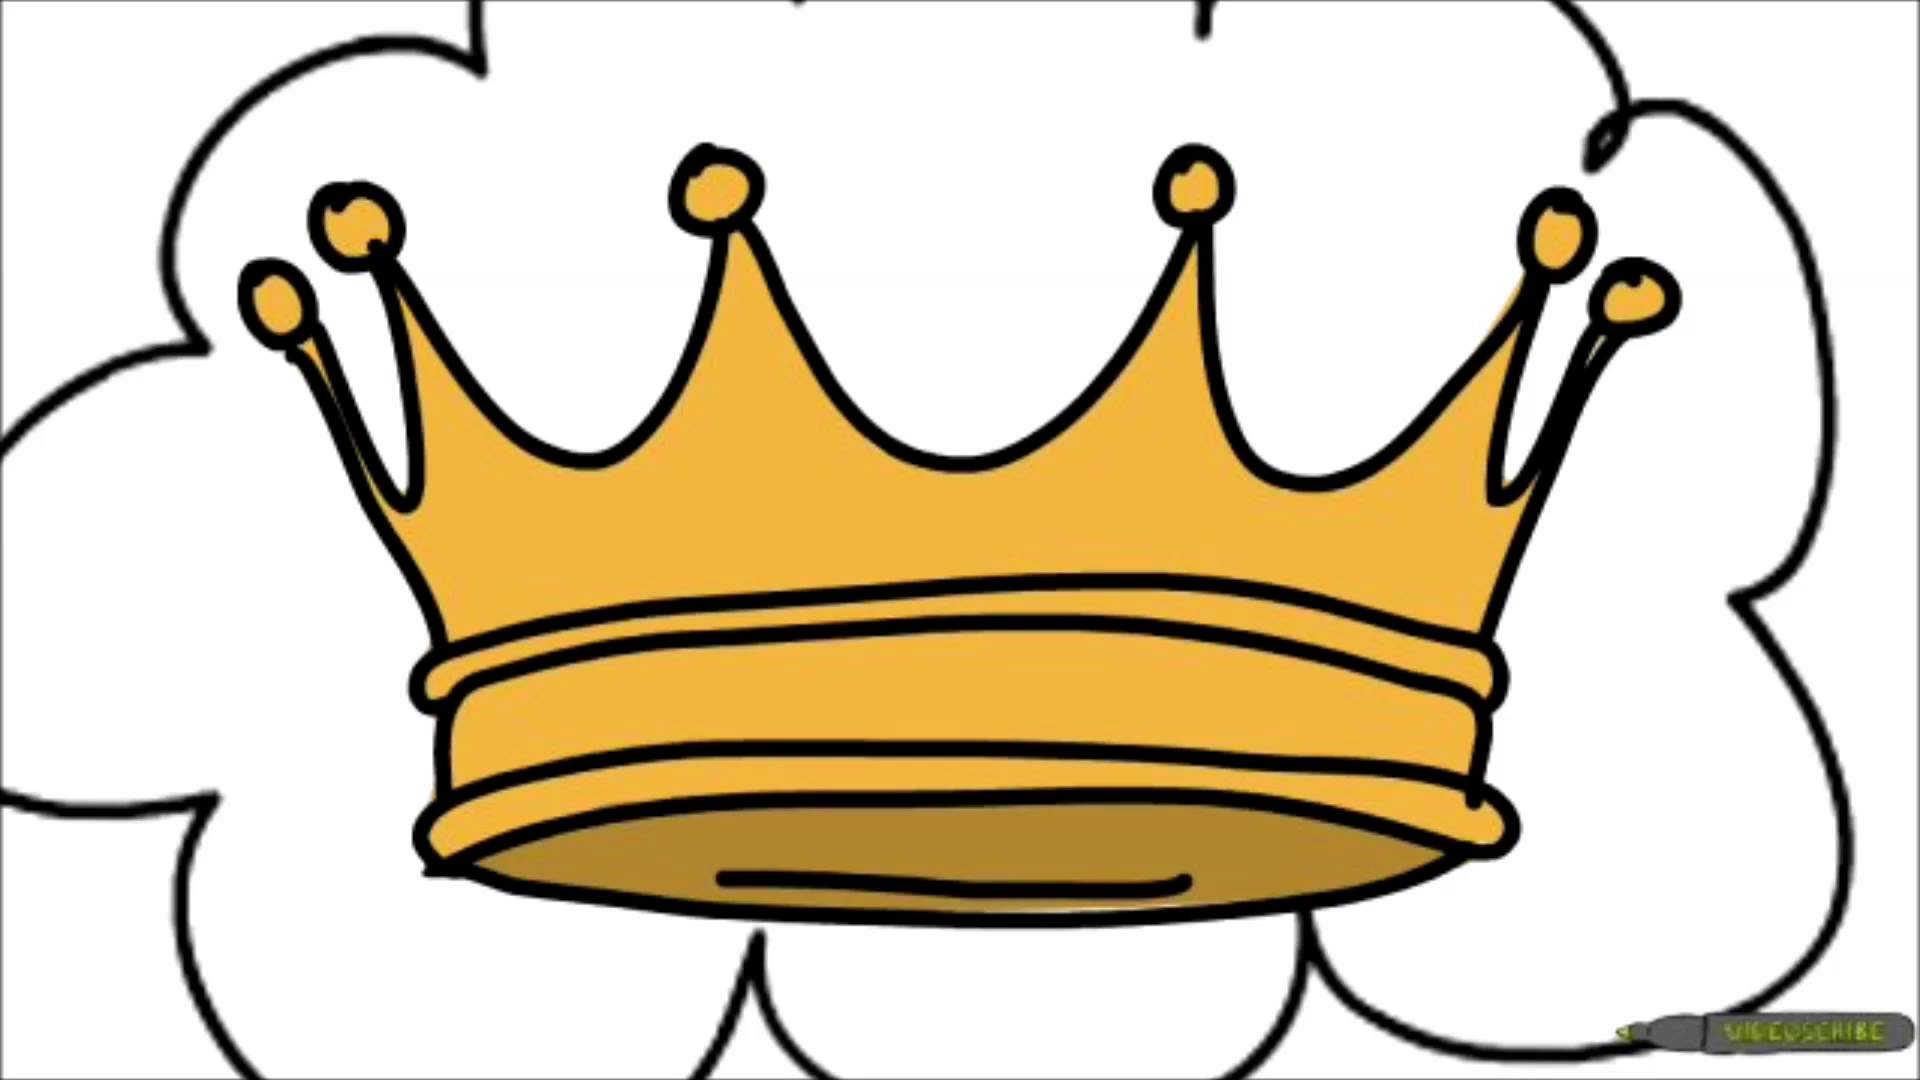 king crown drawing at getdrawings com free for personal use king rh getdrawings com free clipart crowns for princess free clipart crowns for princess